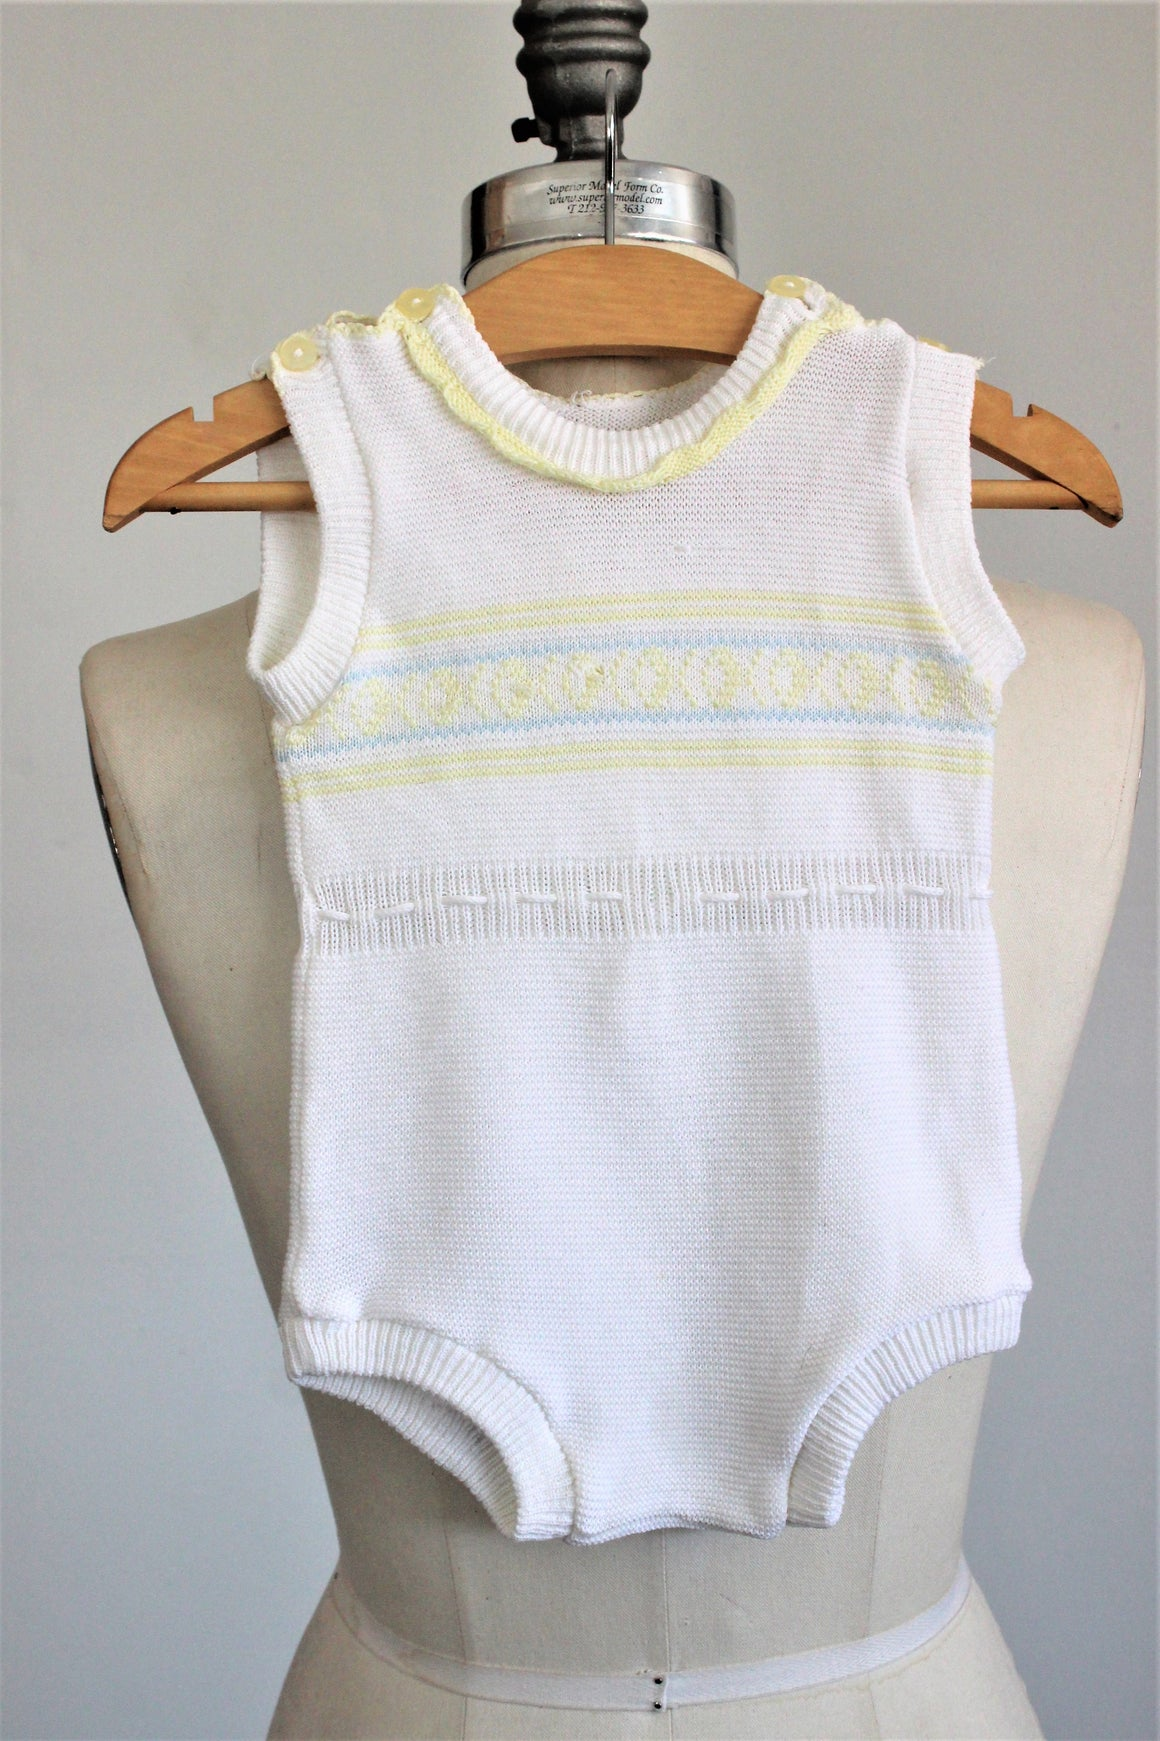 Vintage 1970s Baby Onesie Outfit Boy Or Unisex